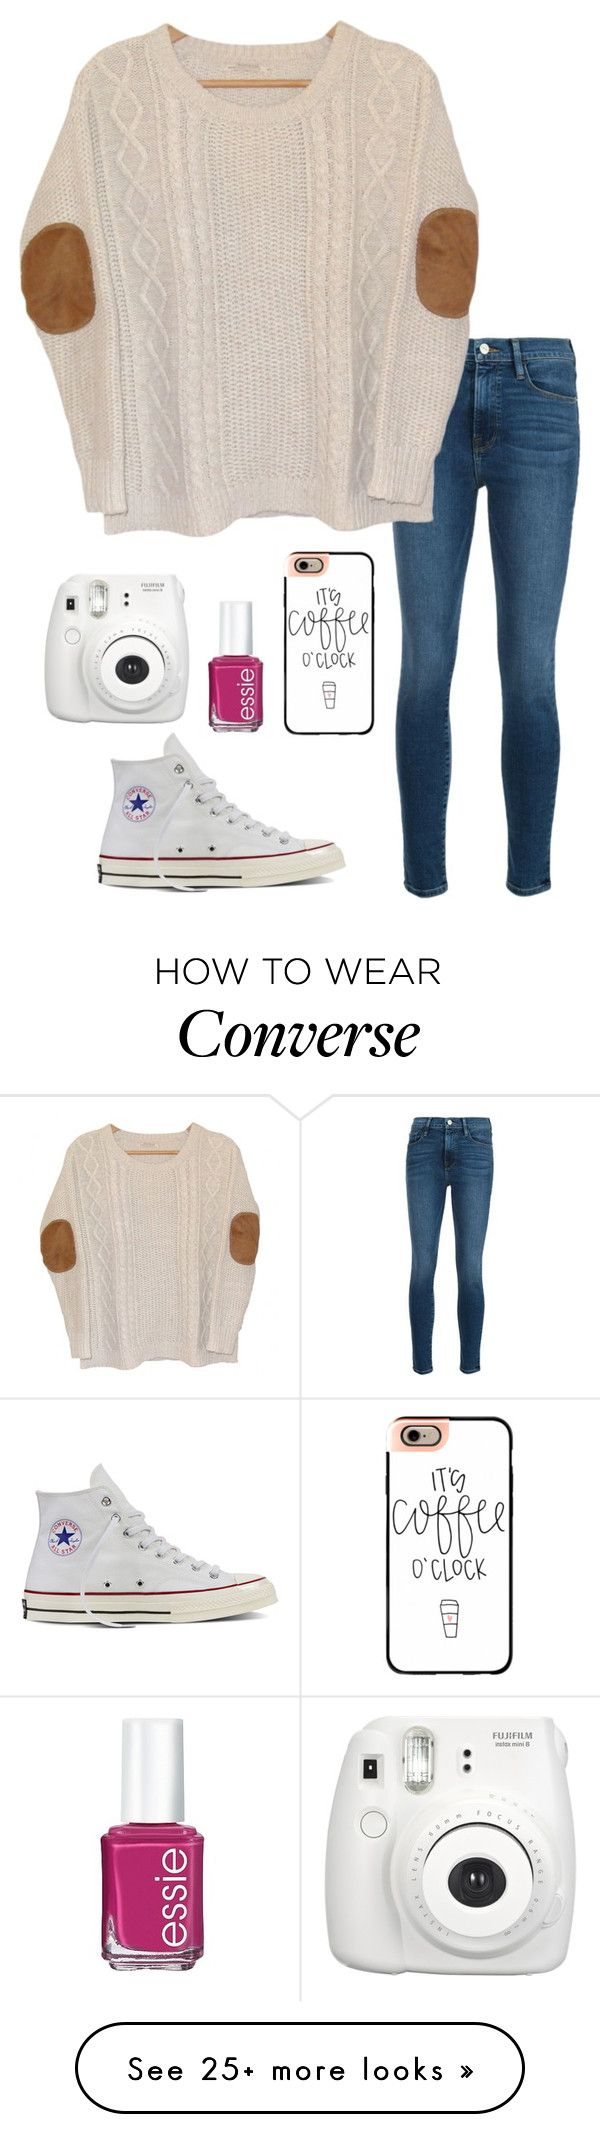 """Fall season has started for me!"" by eadurbala08 on Polyvore featuring Frame Denim, Urban Outfitters, Converse, Casetify, Essie and Fujifilm"